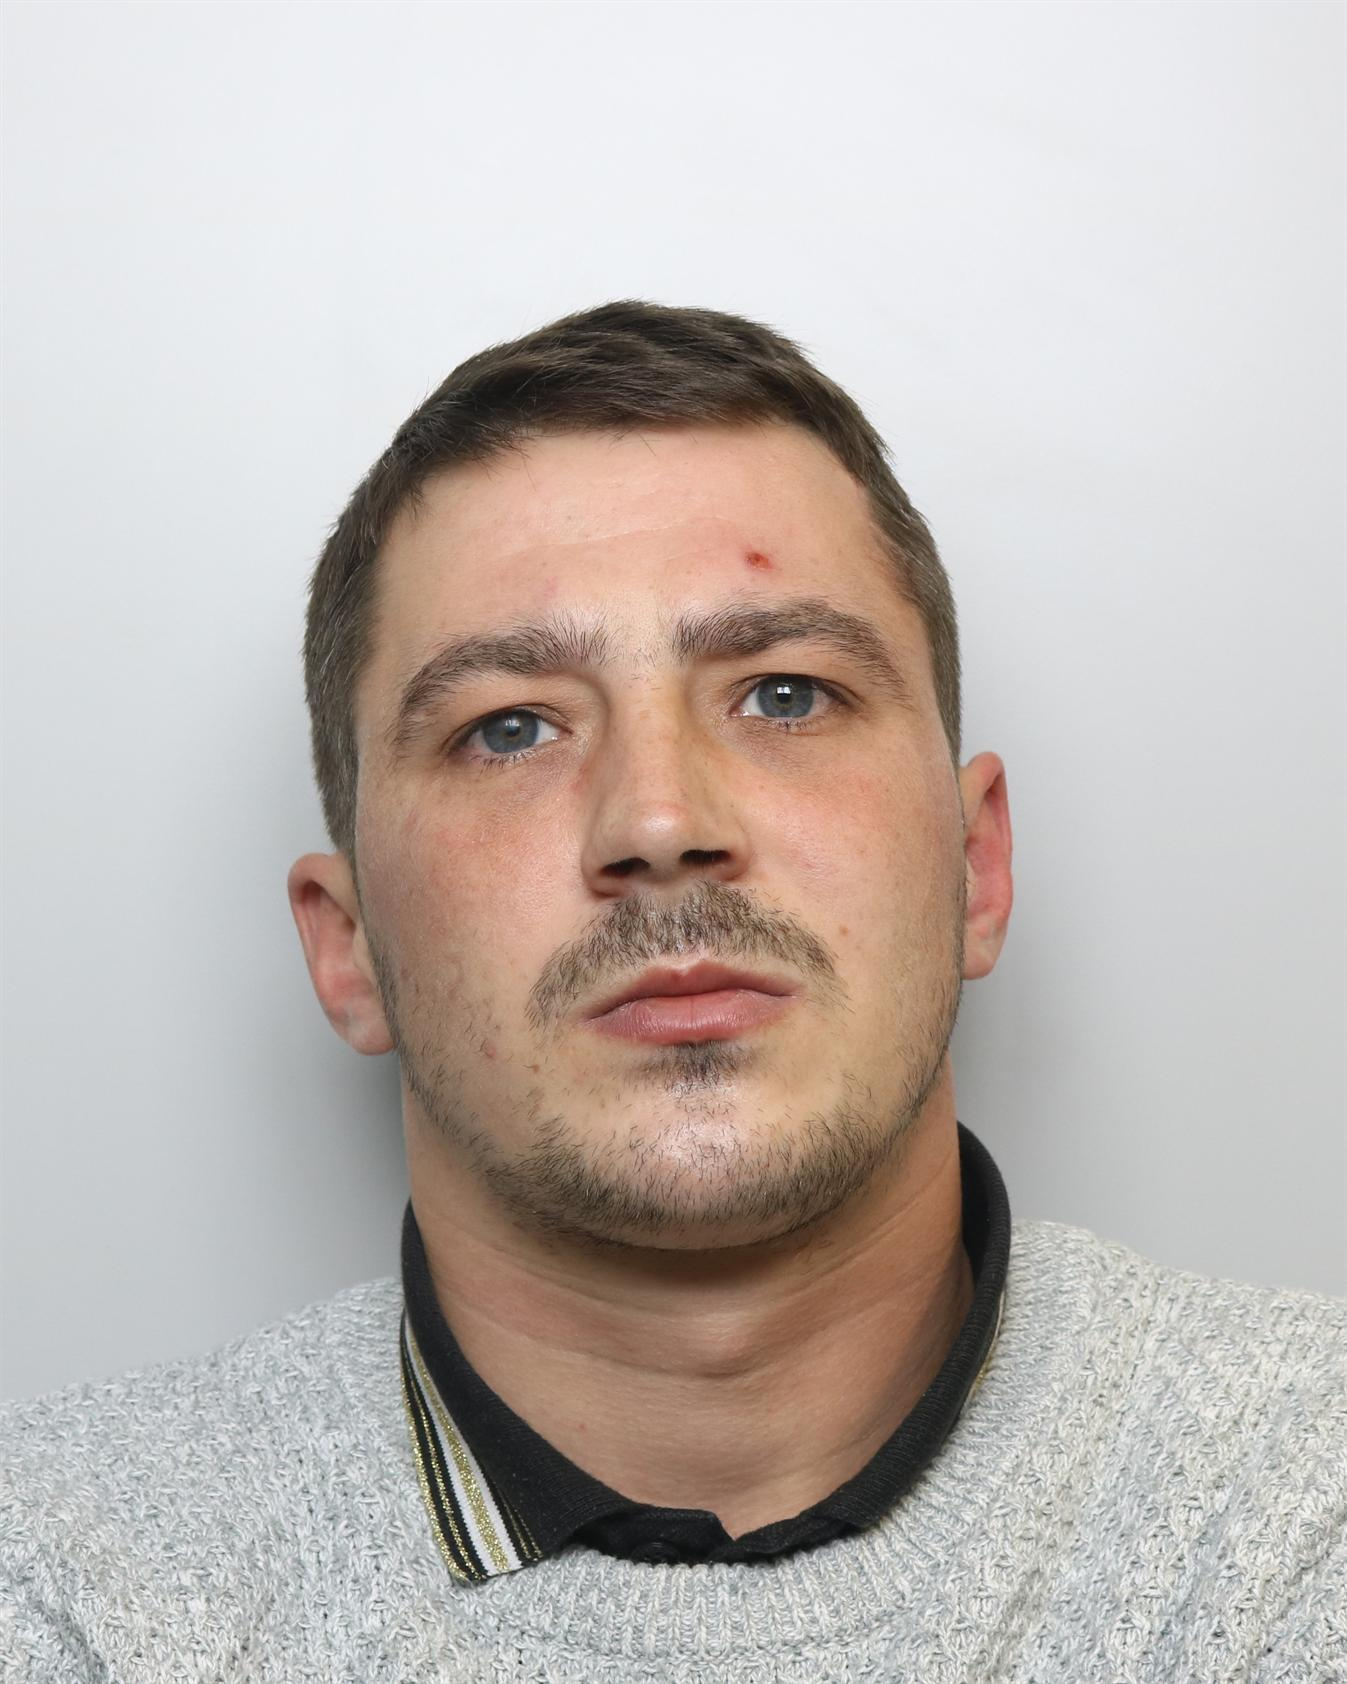 Man jailed after being caught with drugs stash worth over £5,000